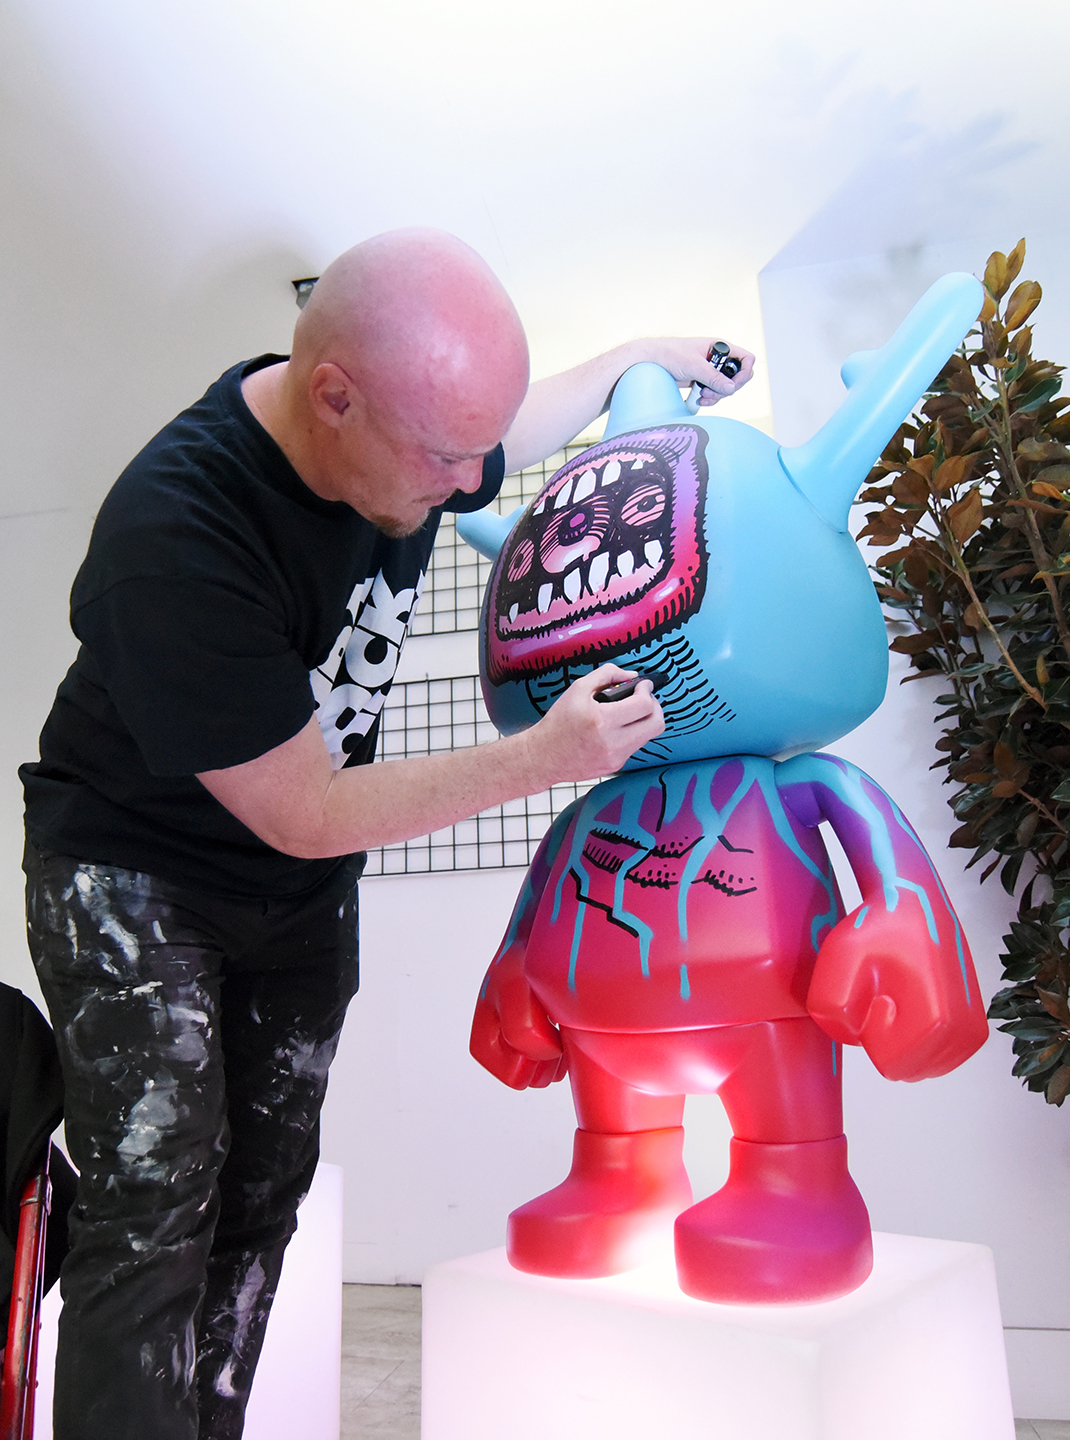 Dan Lish draws live at the SXSW Gaming Opening Party during the 2019 SXSW Conference and Festivals at The Main – Photo by Dave Pedley/Getty Images for SXSW